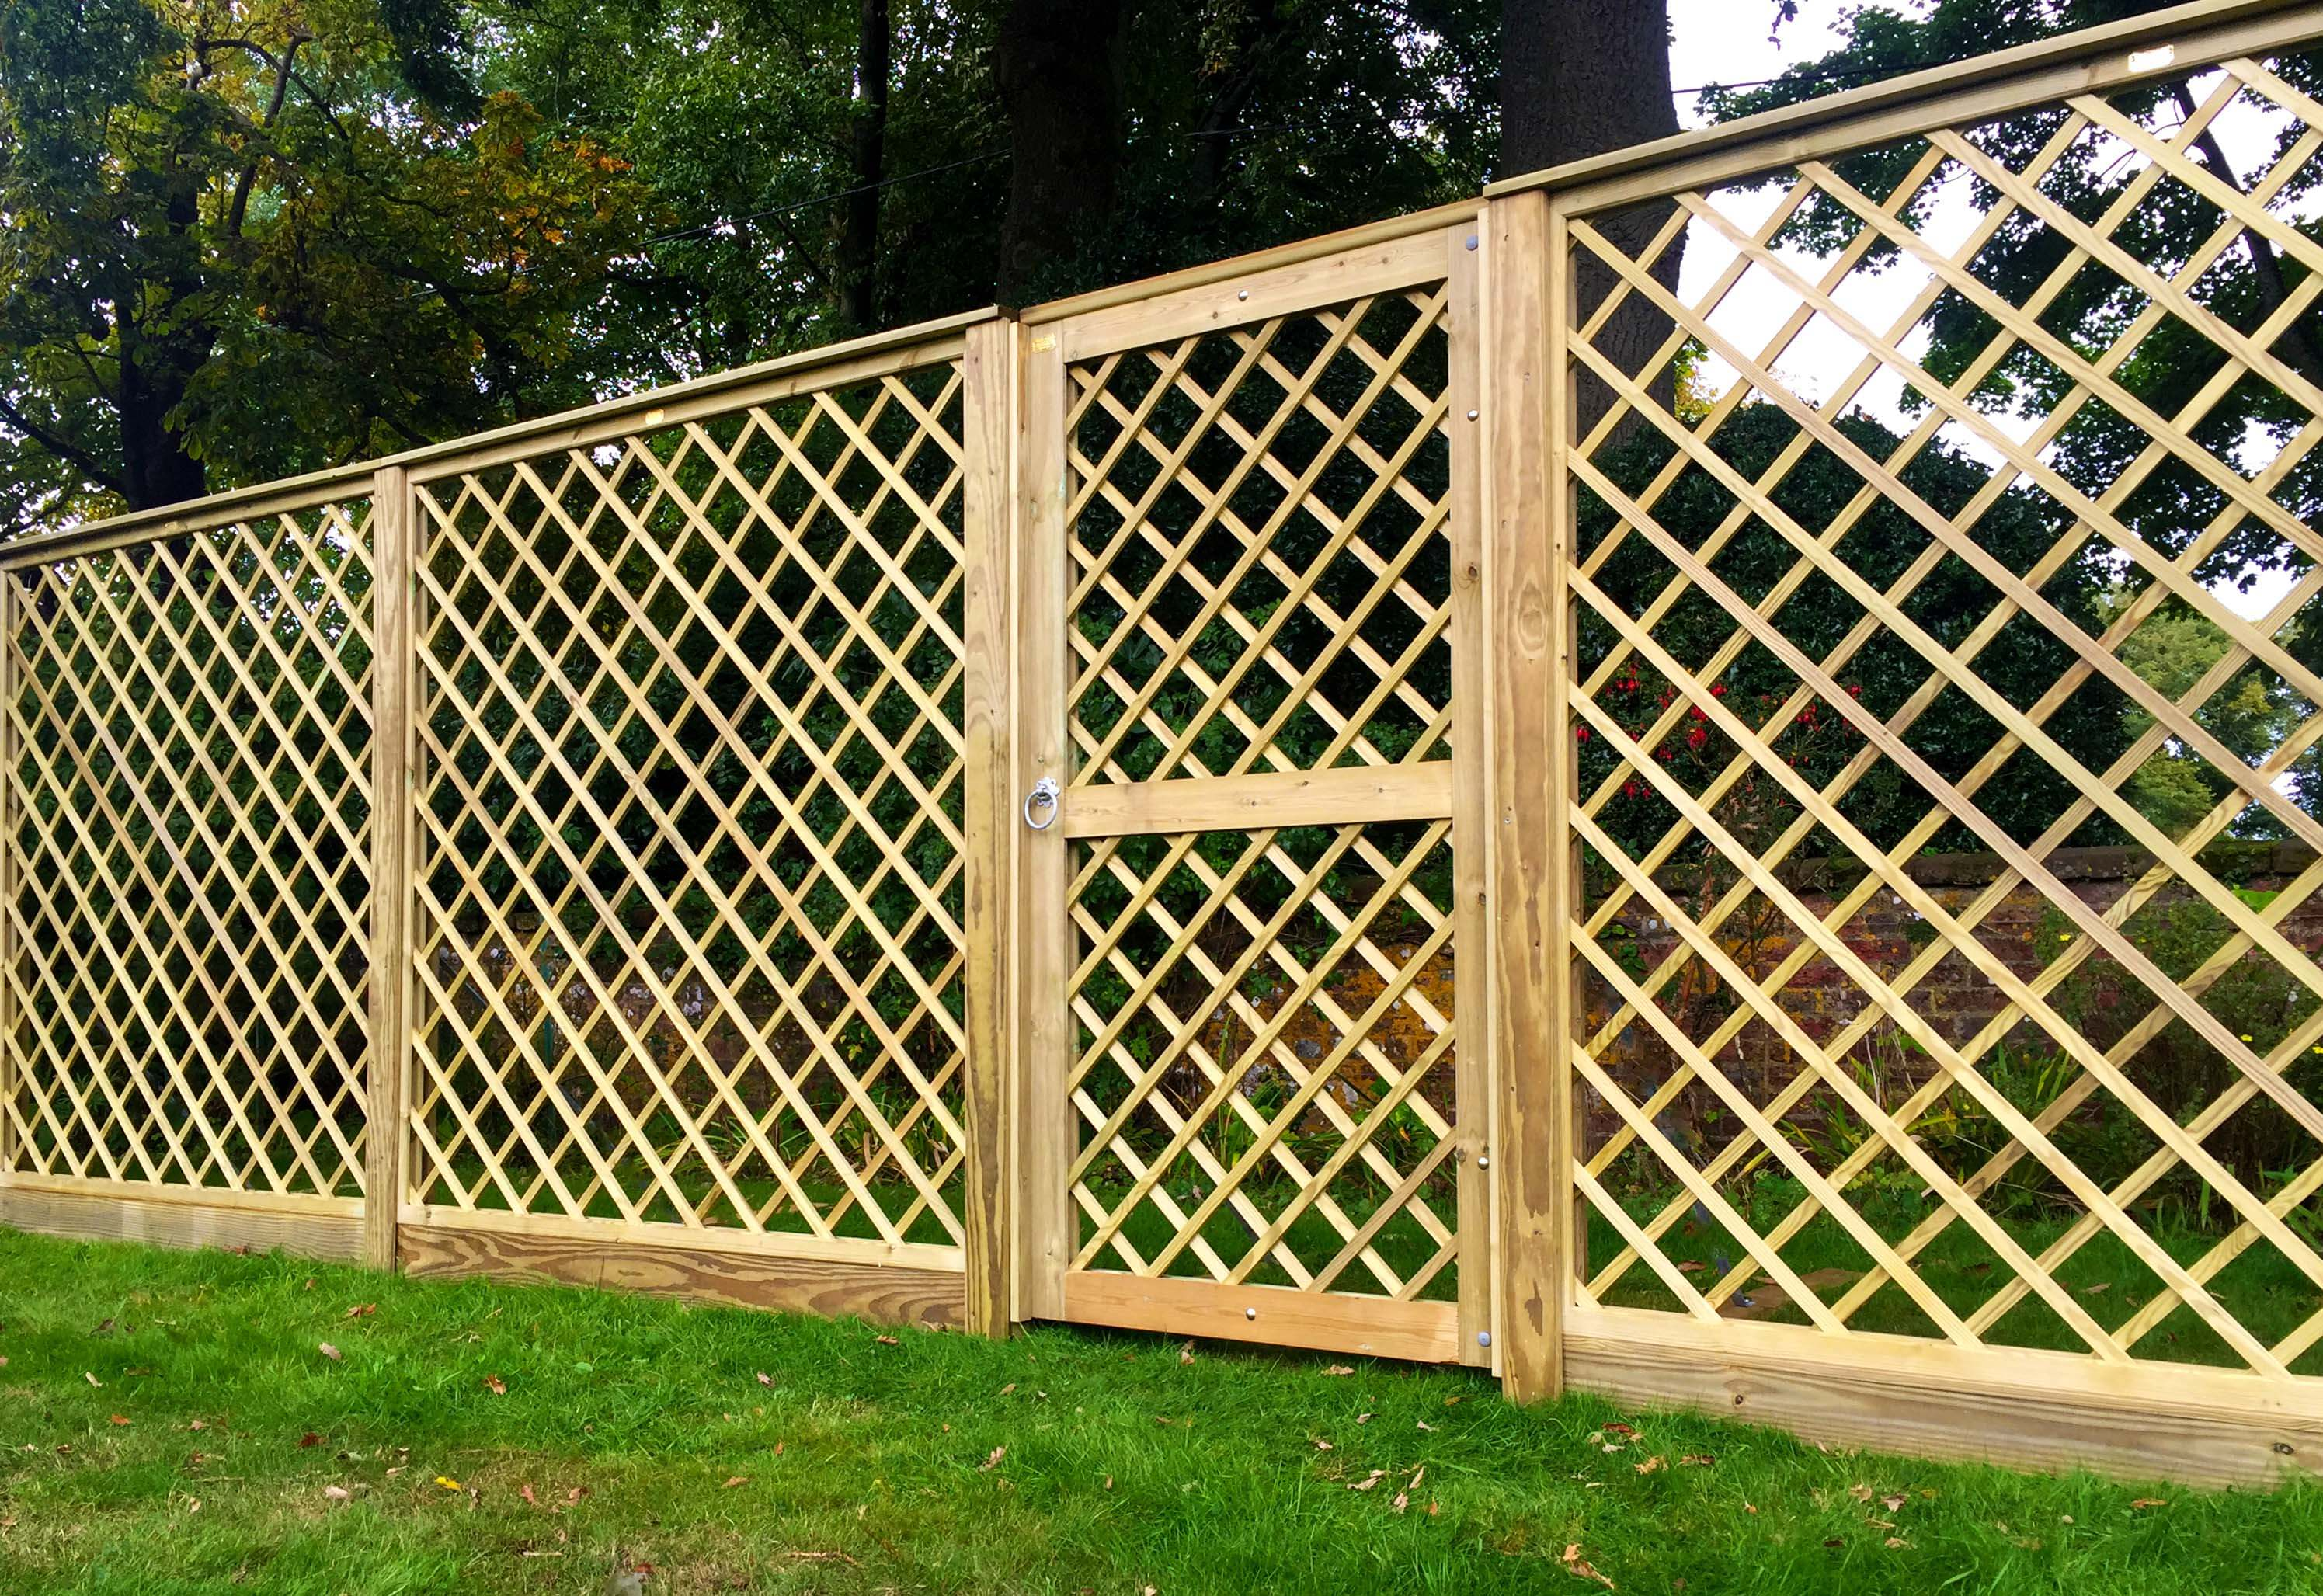 Premier Diamond Trellis with trellis garden gate